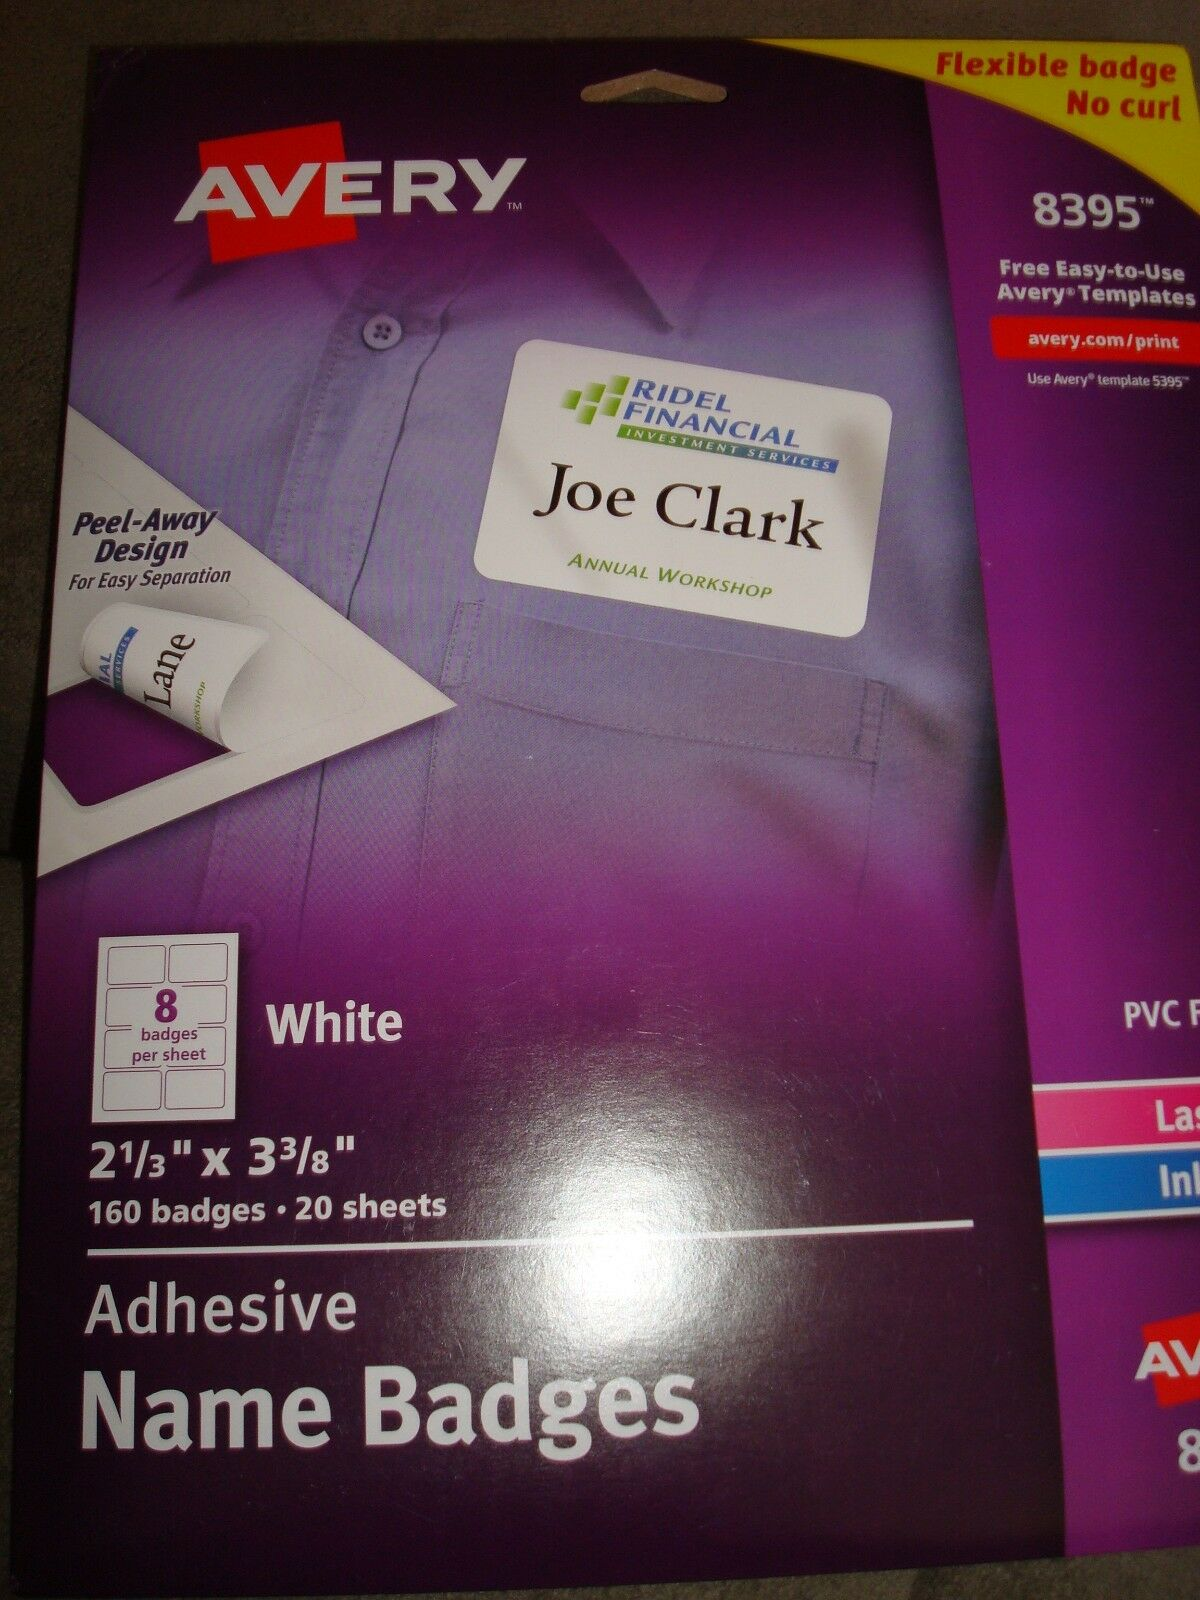 avery adhesive name badges labels 8395 310241201817 20 00